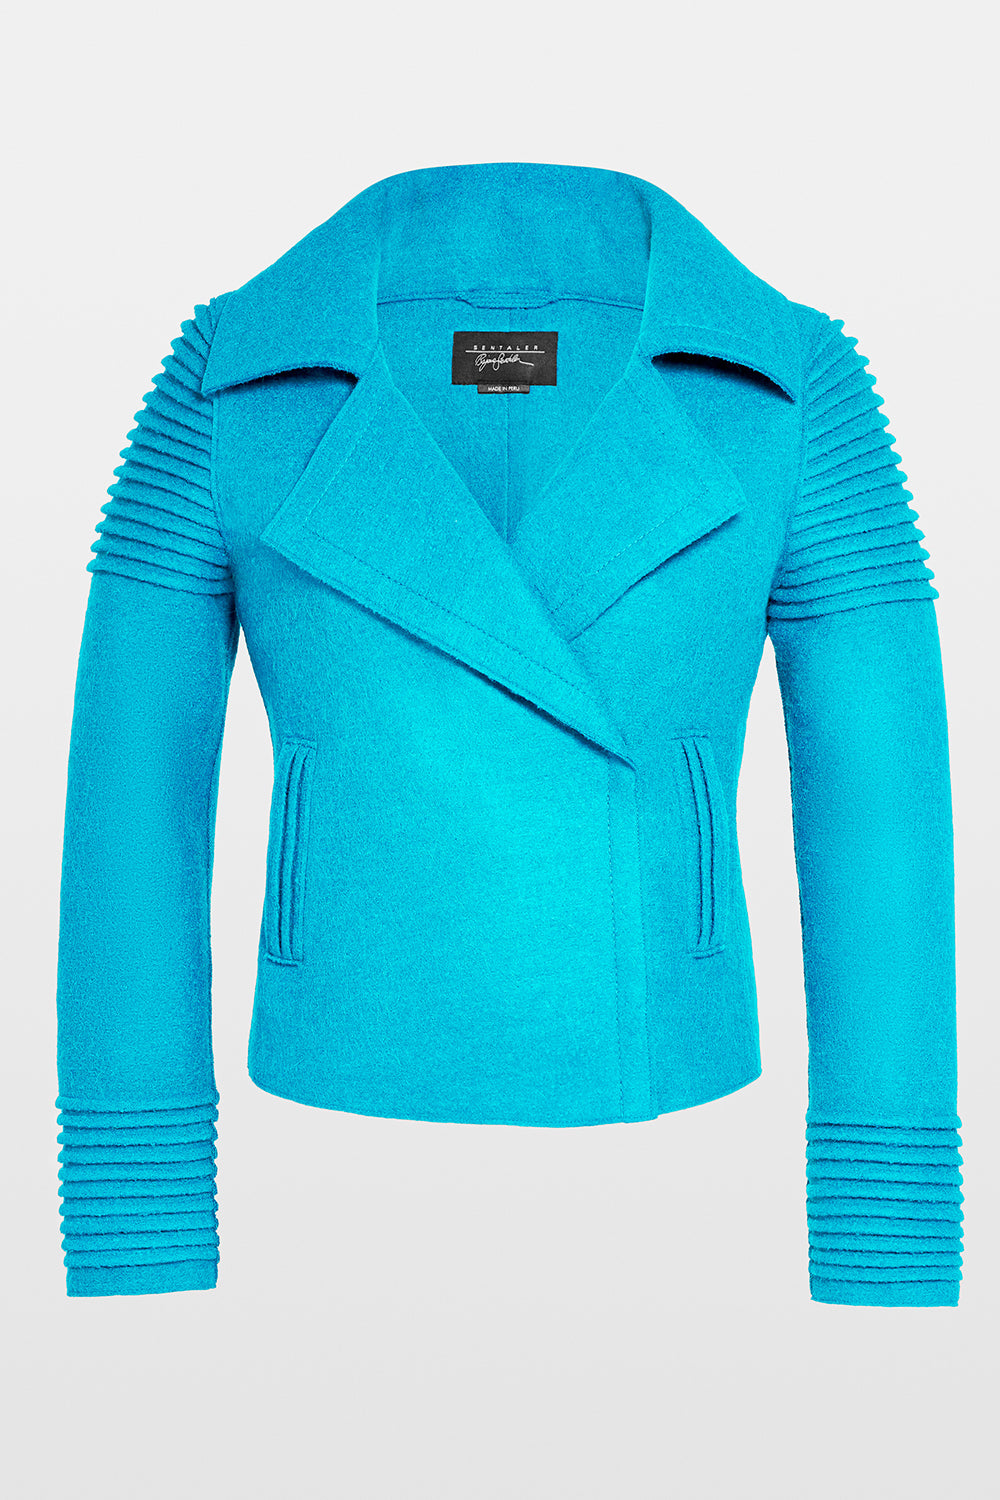 Sentaler Bomber Jacket with Ribbed Shoulders and Cuffs featured in Superfine Alpaca and available in AI Aqua. Seen off model.